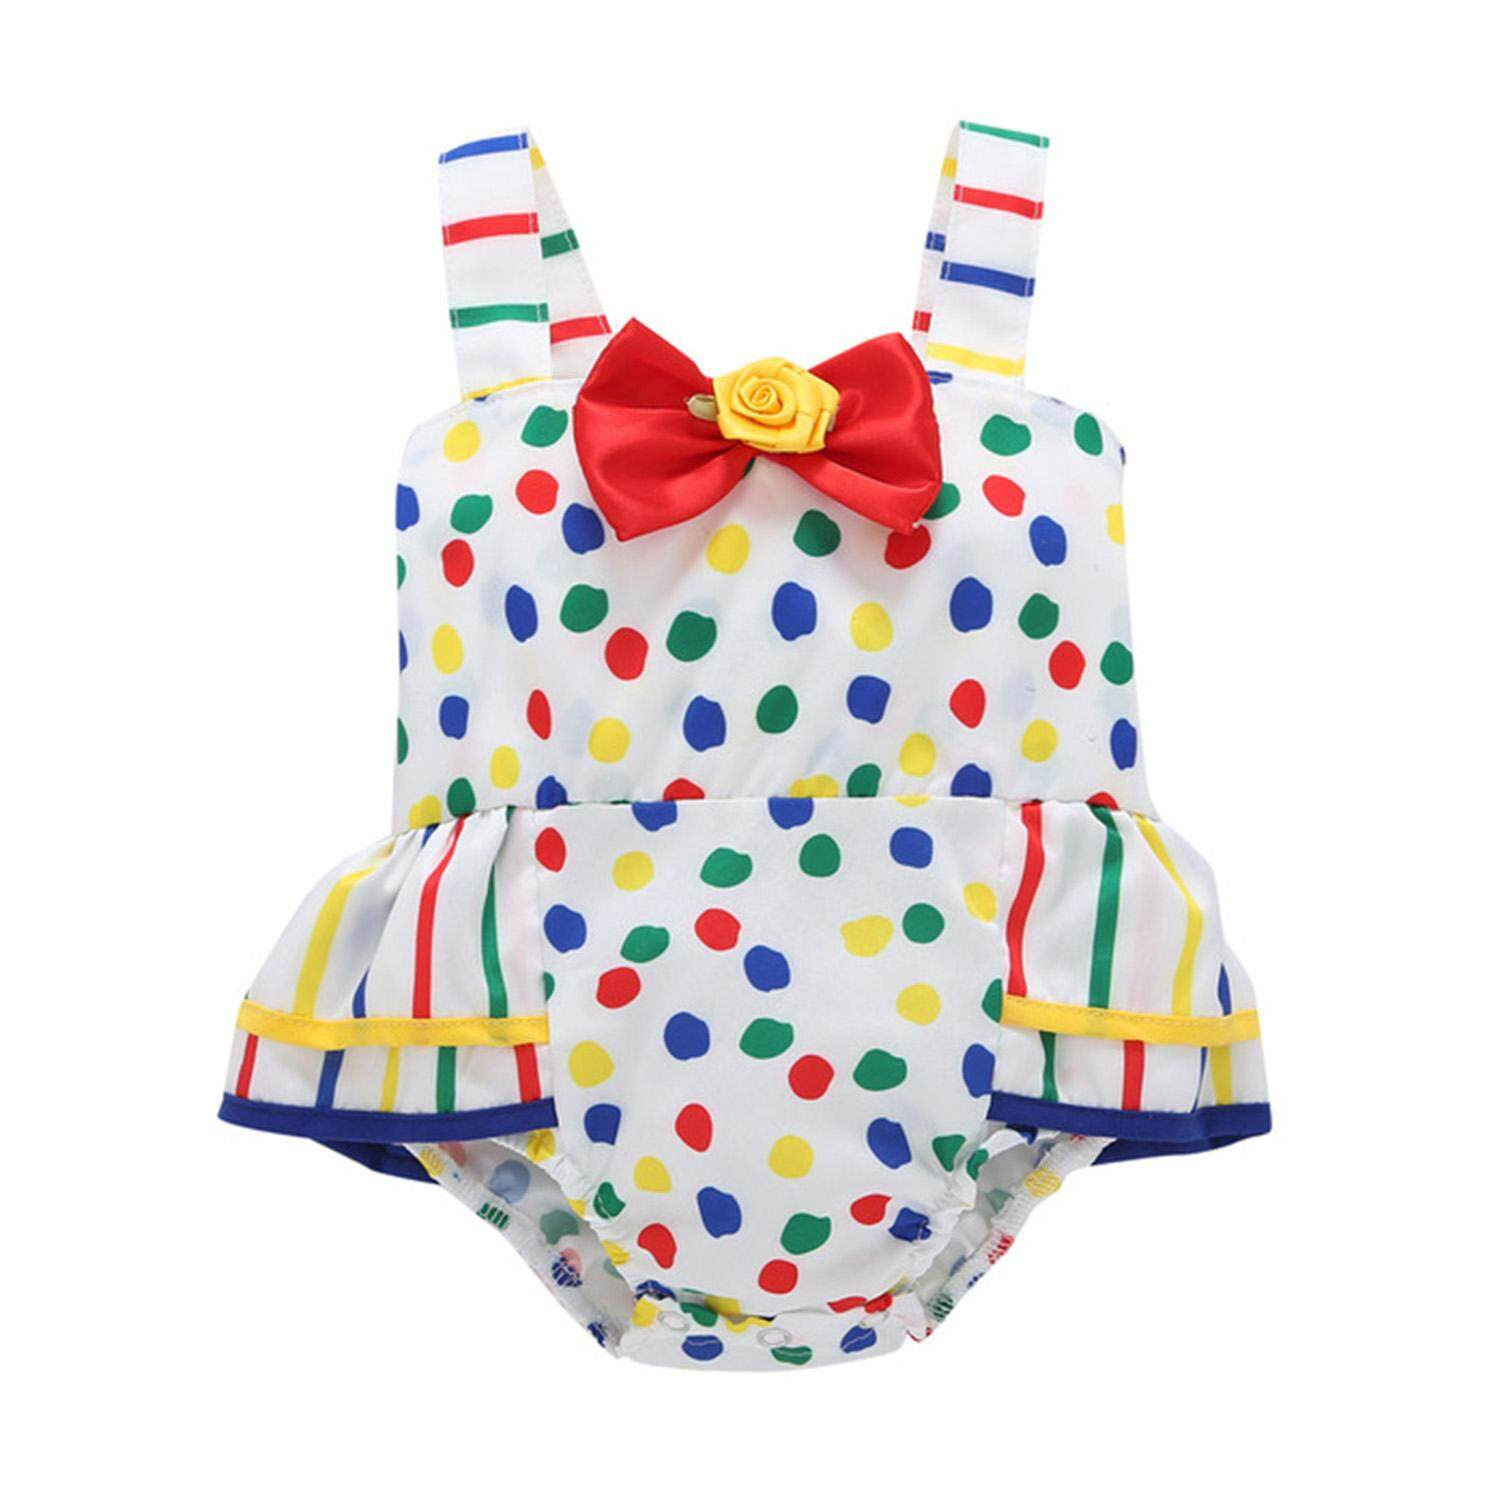 8c8ac1408da GD store Baby Toddler Girls Outfit Colorful Polka Dot Cotton Rompers with  Red Bowknot Sleeveless Jumpsuit